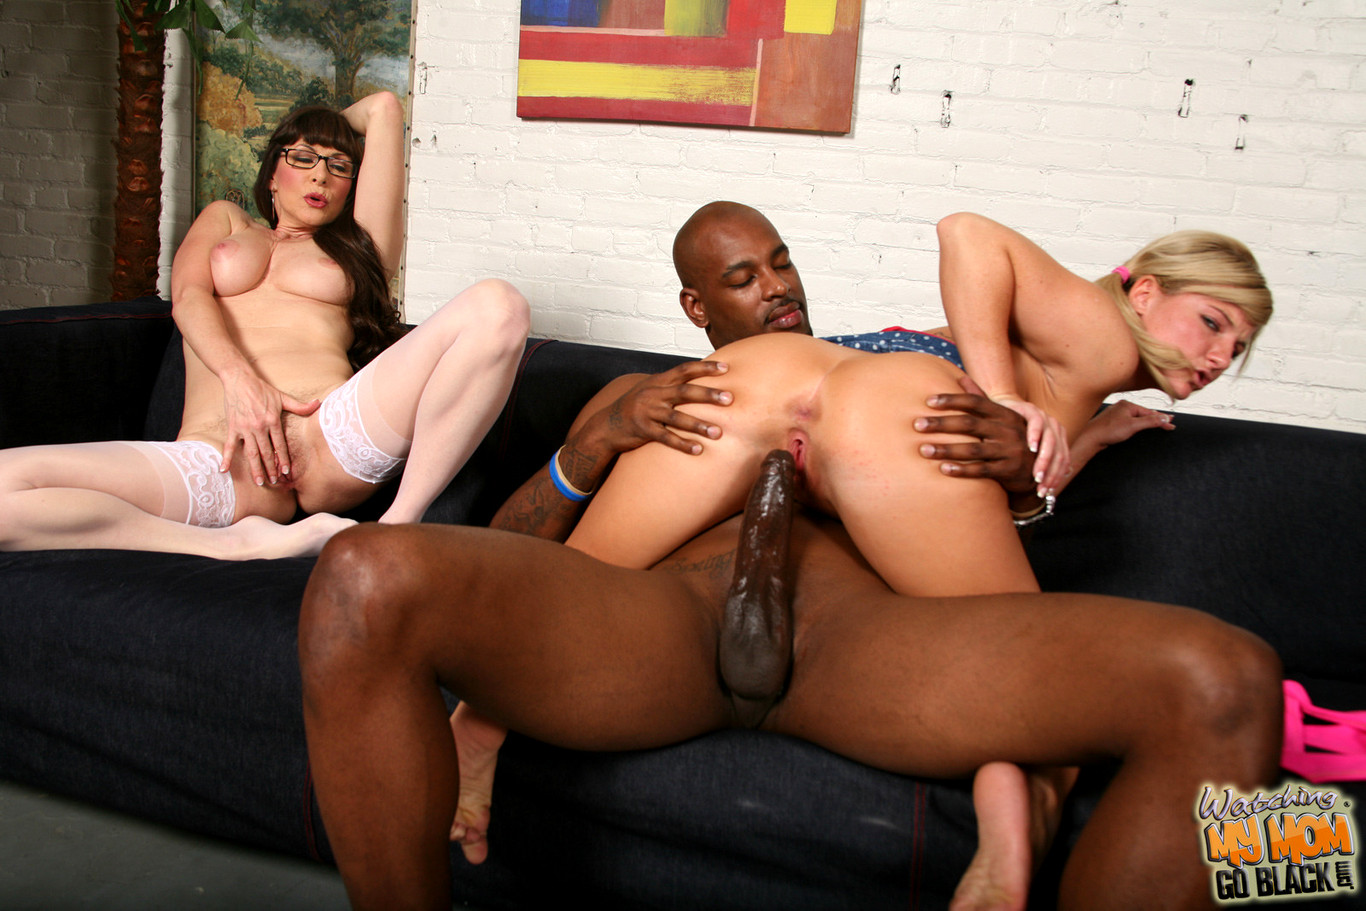 Mature dick fucks babe, black chicks retro porn